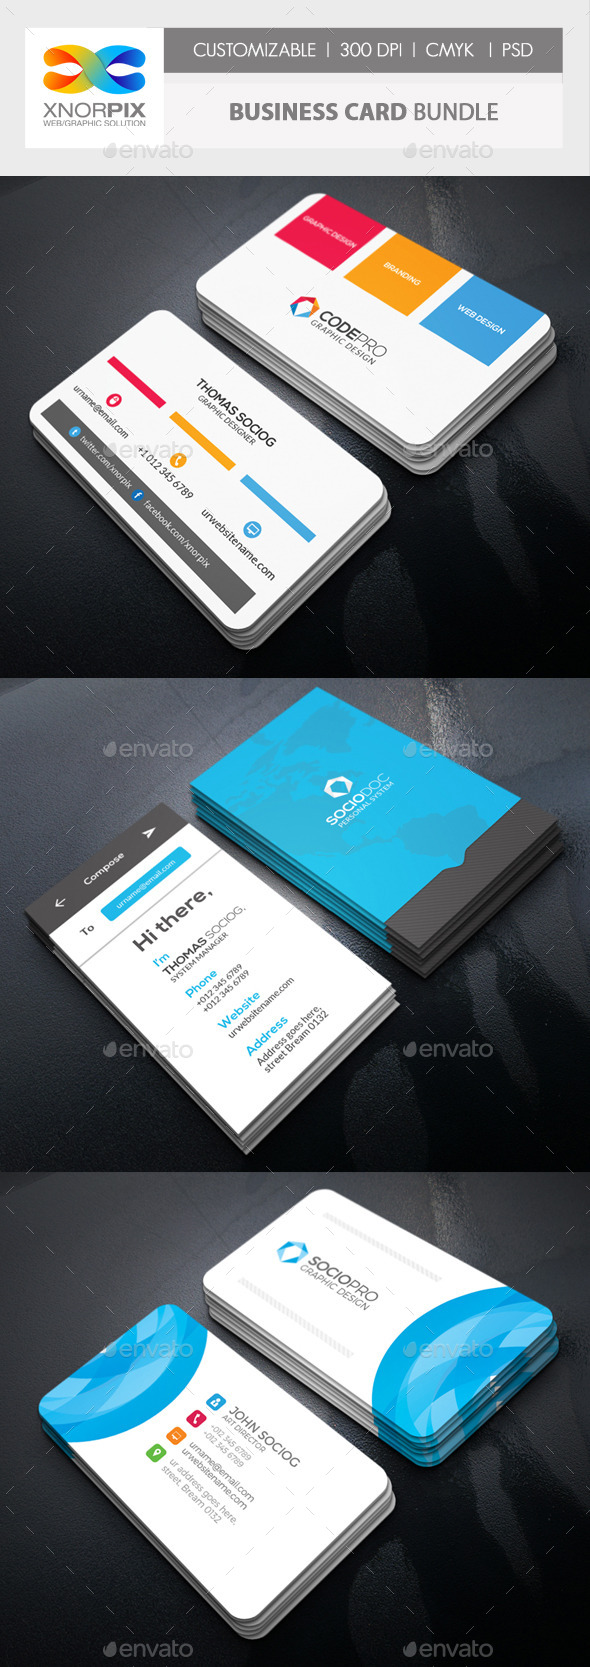 Business Card Bundle 3 in 1-Vol 61